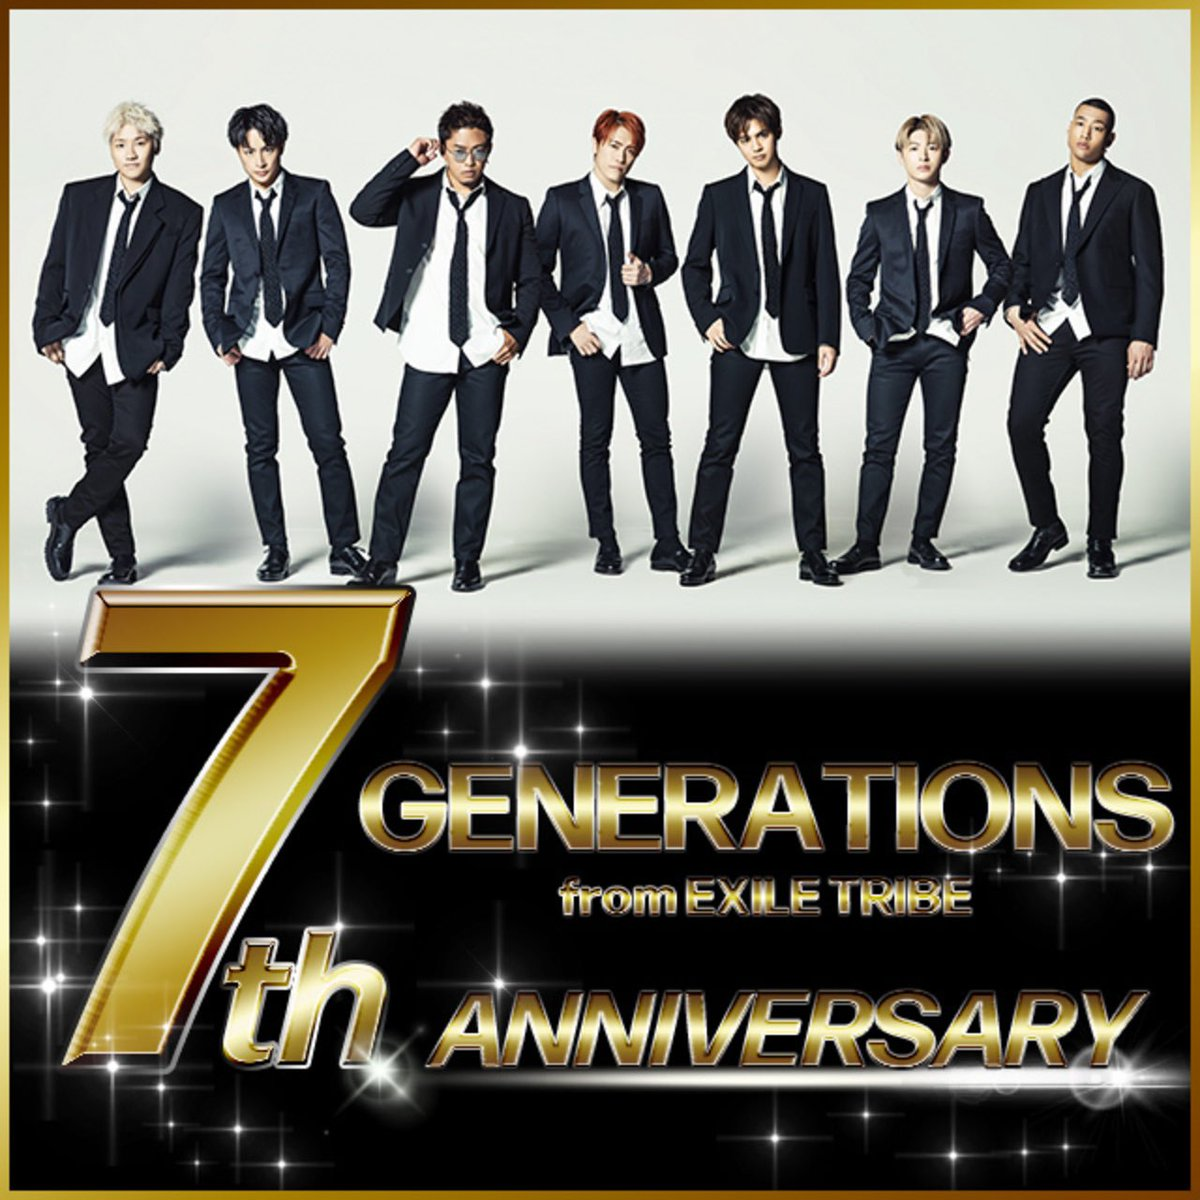 2019.11.21 GENERATIONS7th Anniversary本日限定でOPEN!7th Anniversary Message BordにMessageを投稿した方限定で7周年 Special Movieが閲覧可能‼️ #GENE #GENE7周年